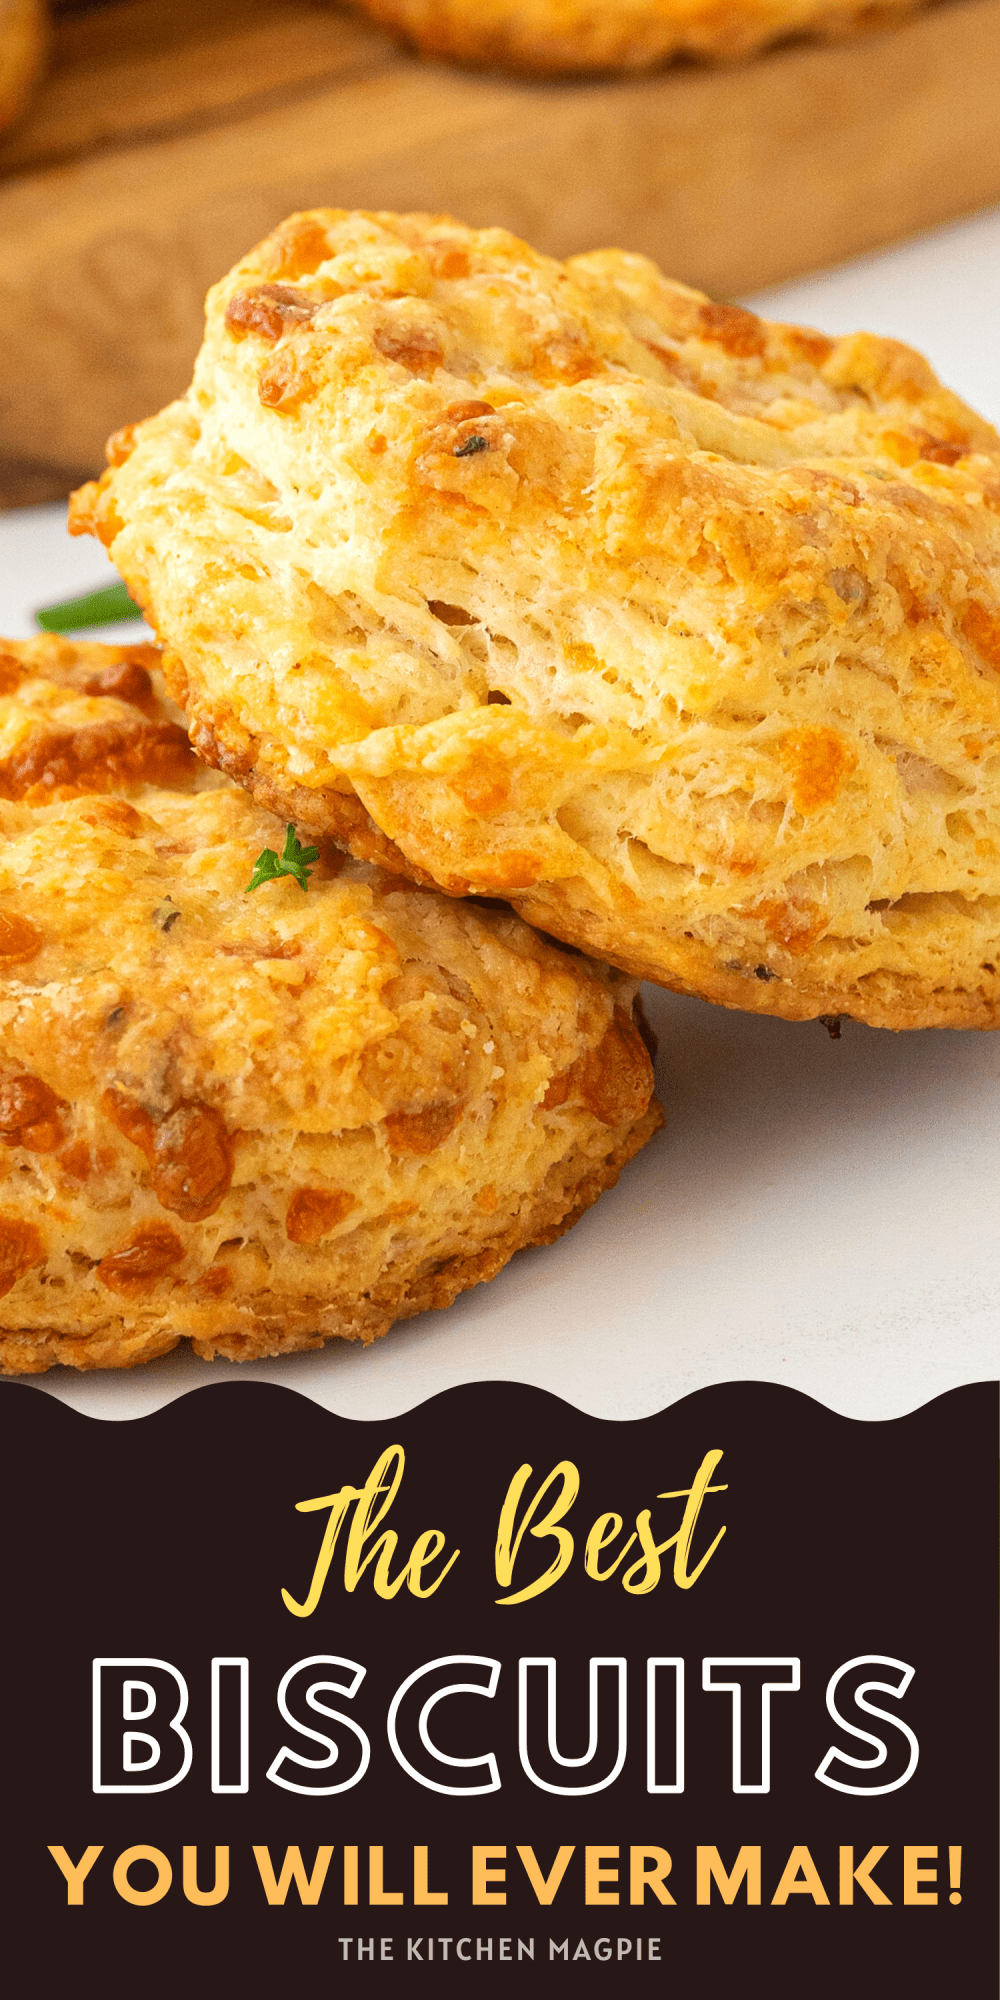 Hot, crispy, flakey biscuits! These are just like the famous garlic cheese biscuits at a local seafood chain but better hot and fresh from your own oven!